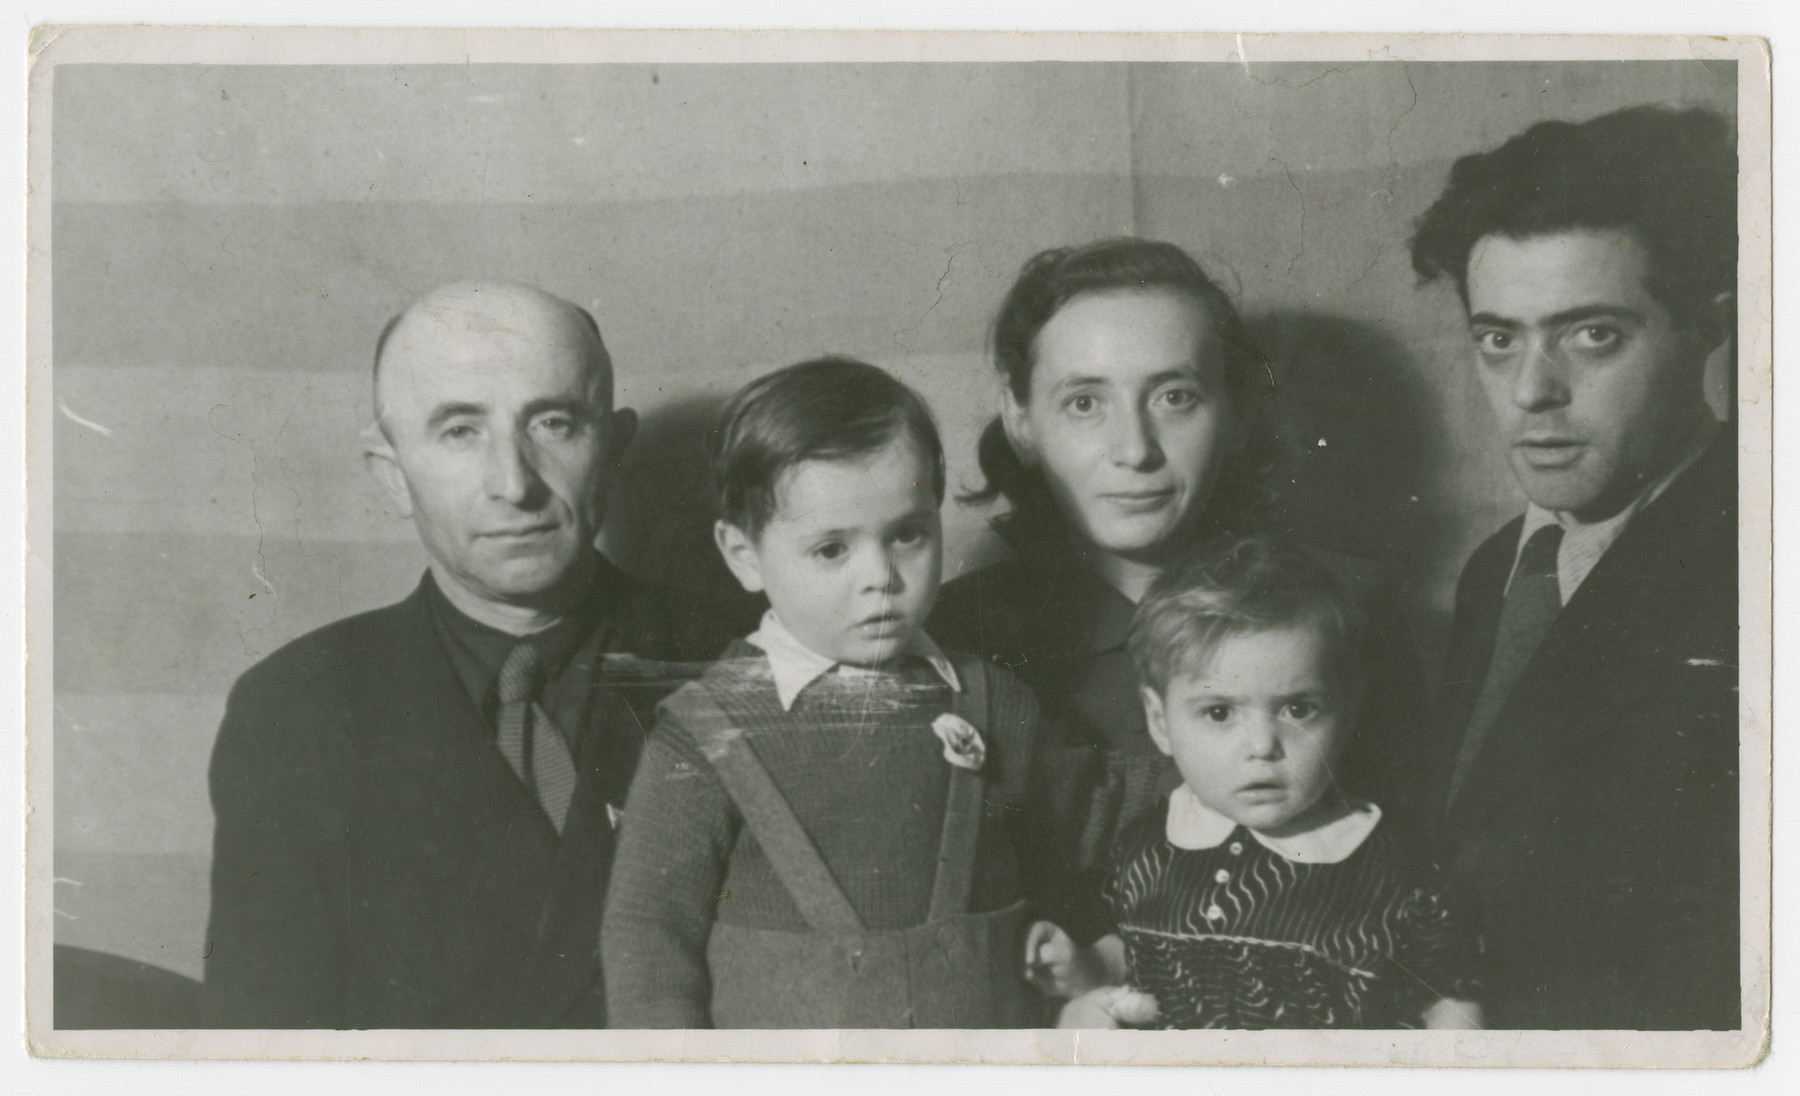 Postwar portrait of the Fridling family in the Schlachtensee displaced persons camp.  From left to right are Abe, Joseph, Gitla, Andzia (Chana) and Abe Fridling.  (The two Abe Fridlings were cousins.)